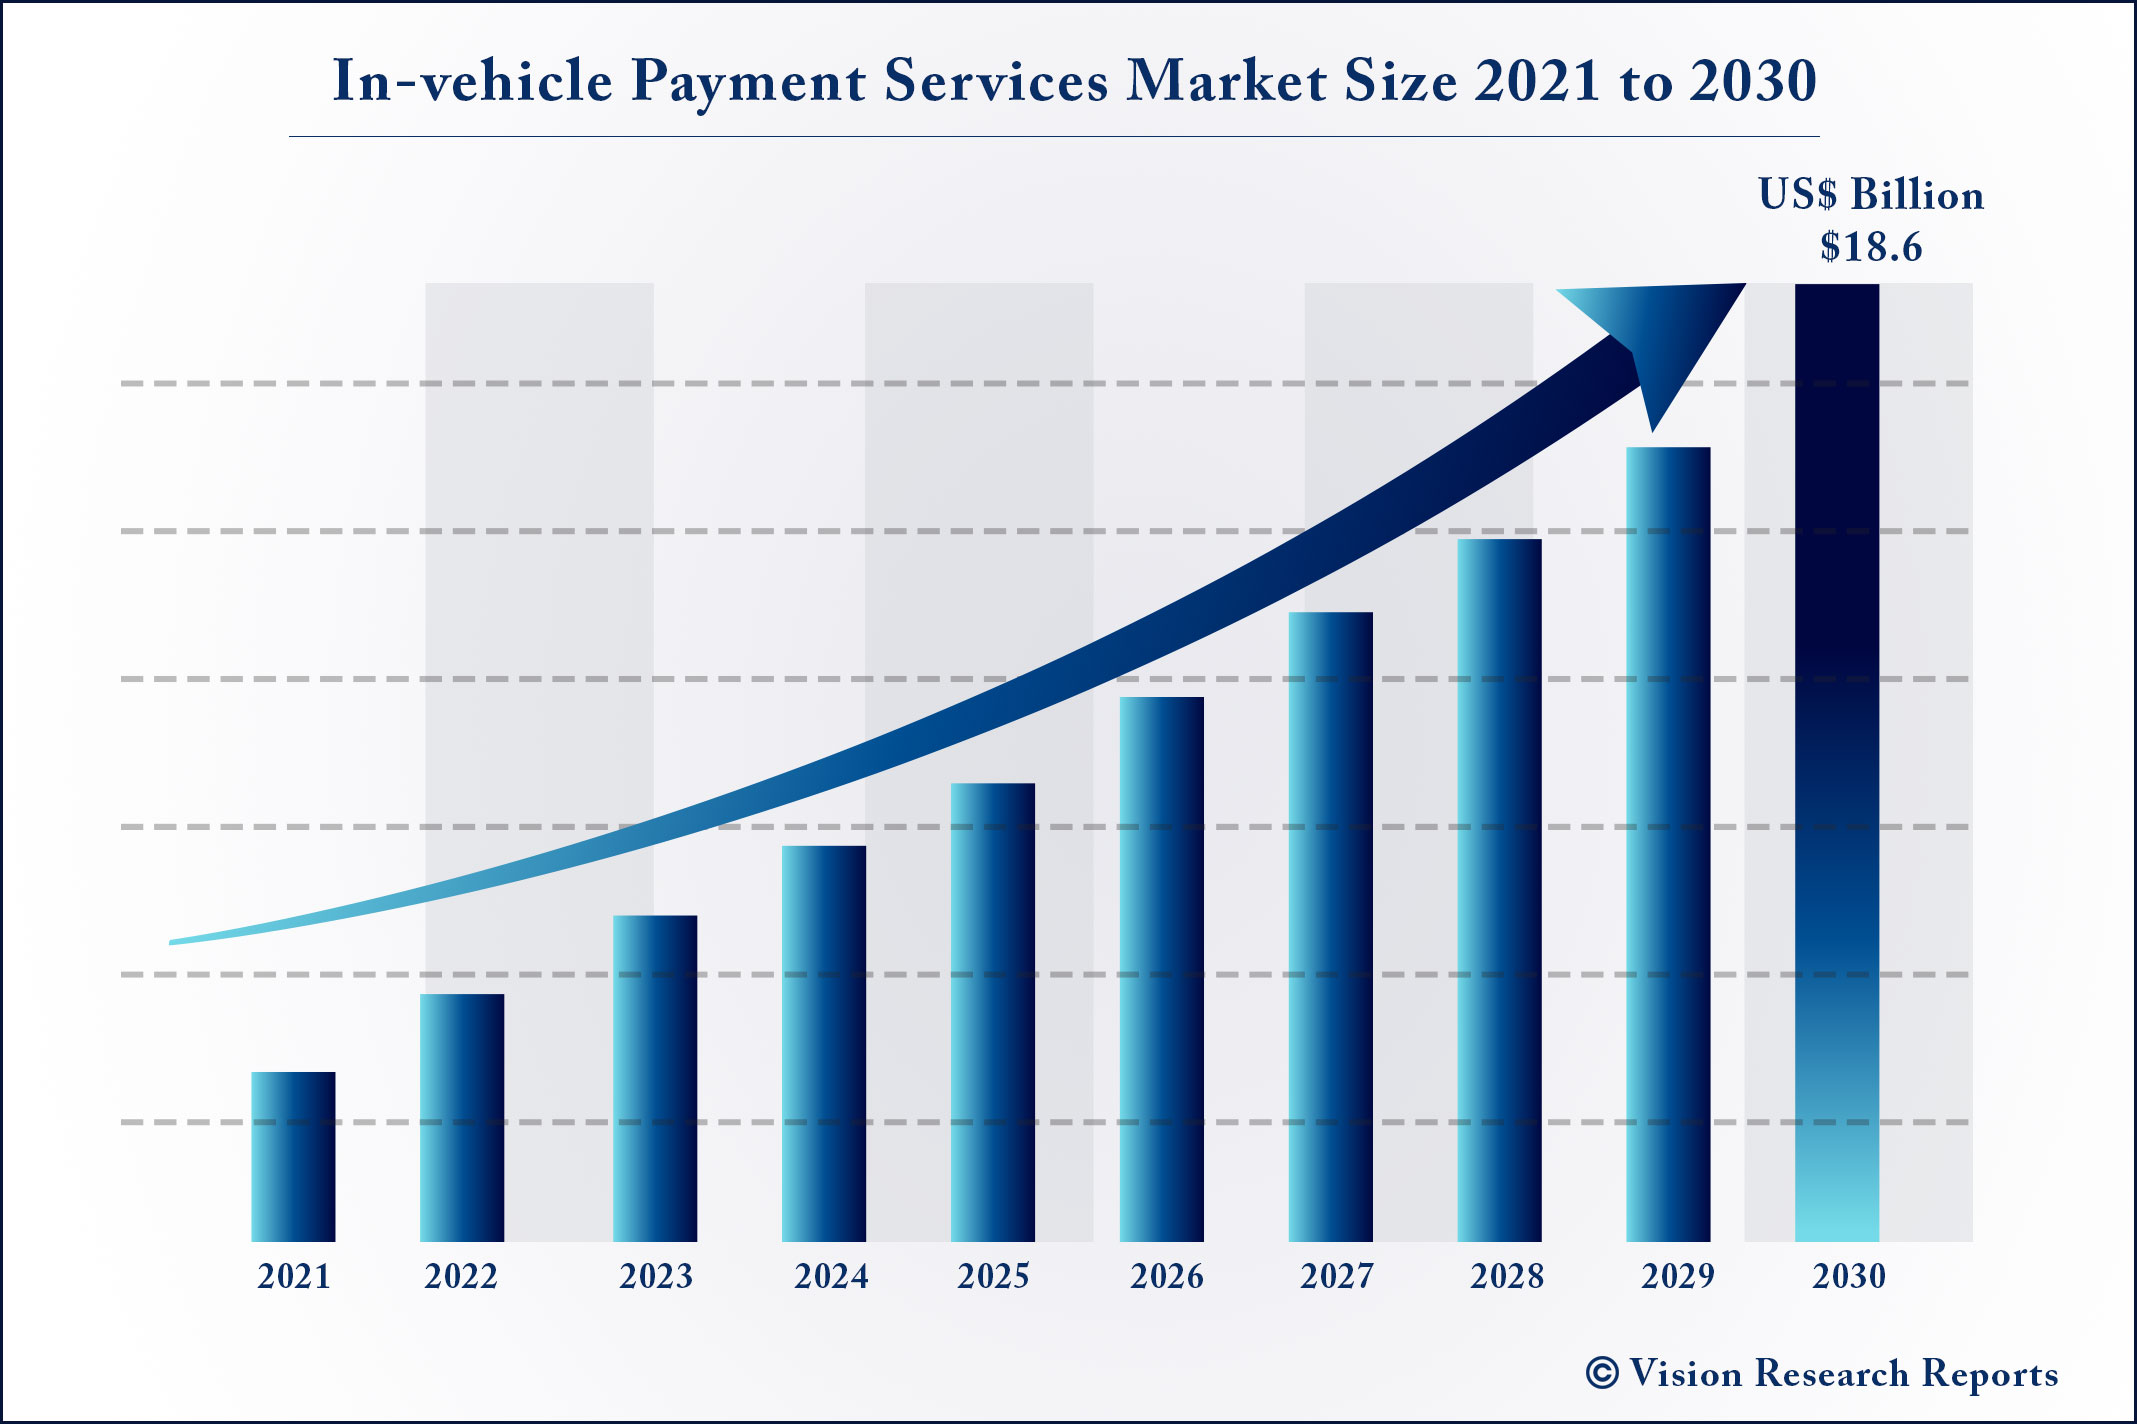 In-vehicle Payment Services Market Size 2021 to 2030